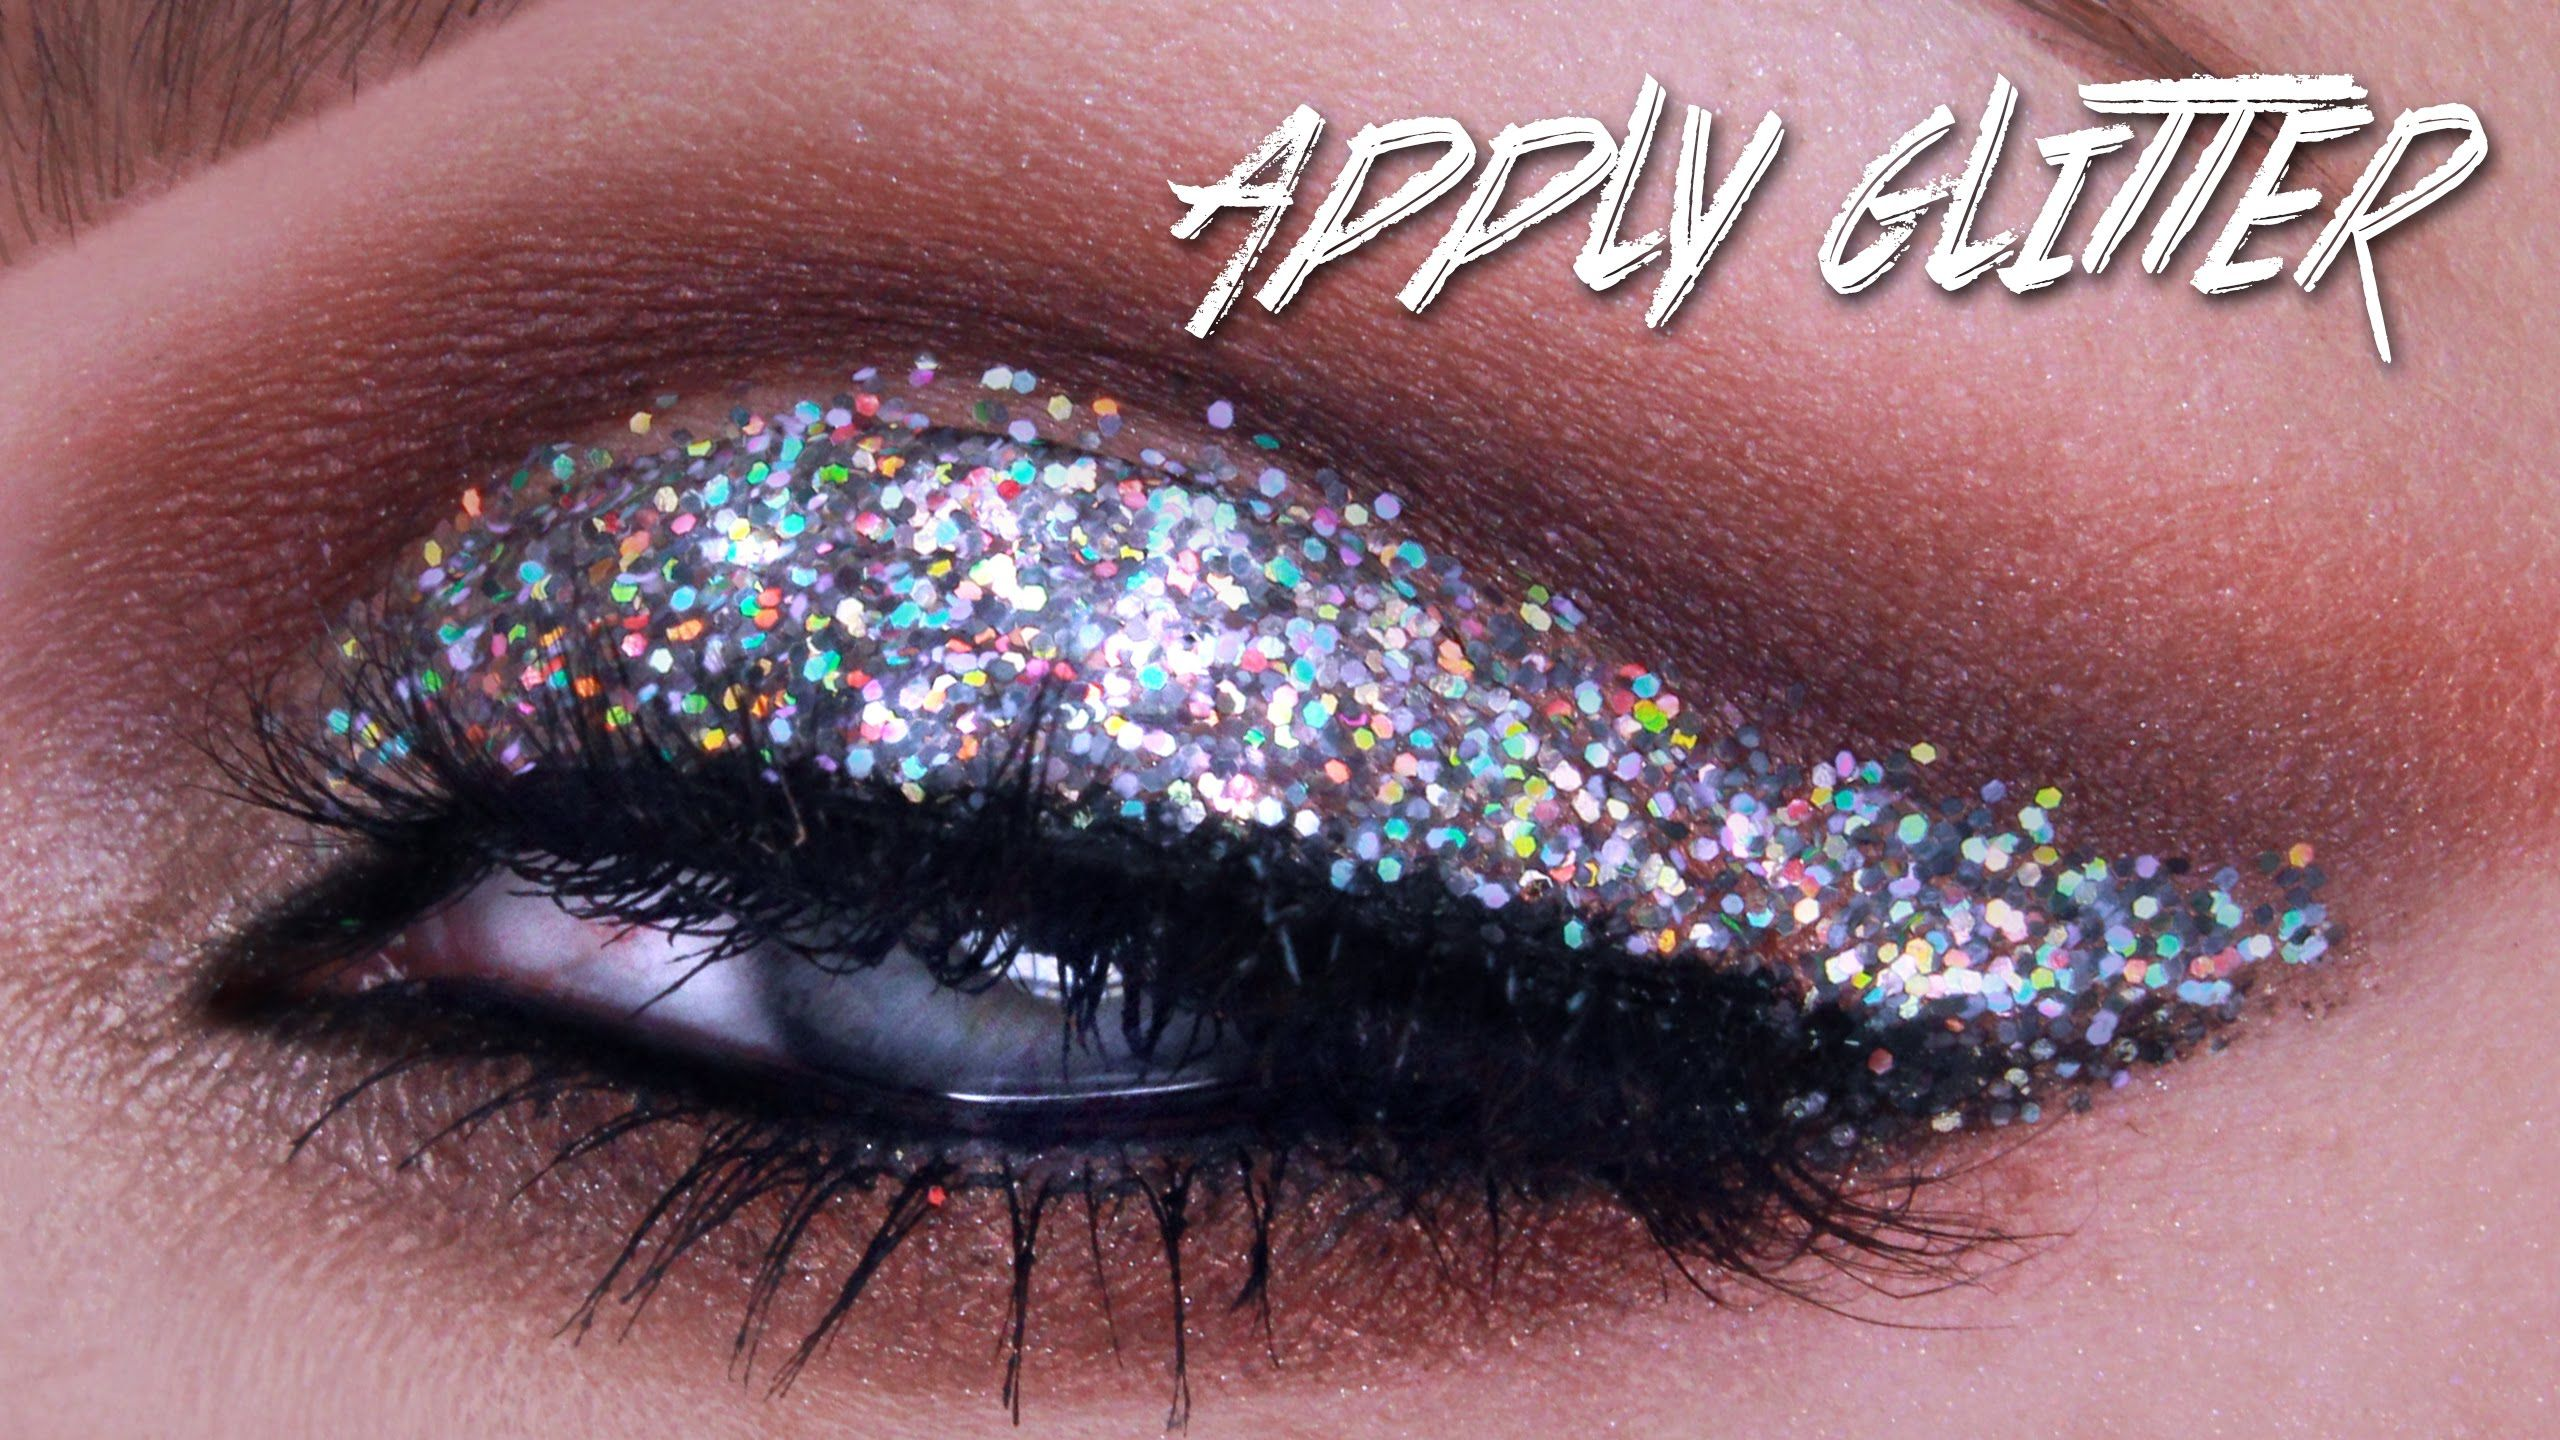 QUICK TIP HOW TO APPLY MAKEUP GLITTER (With images